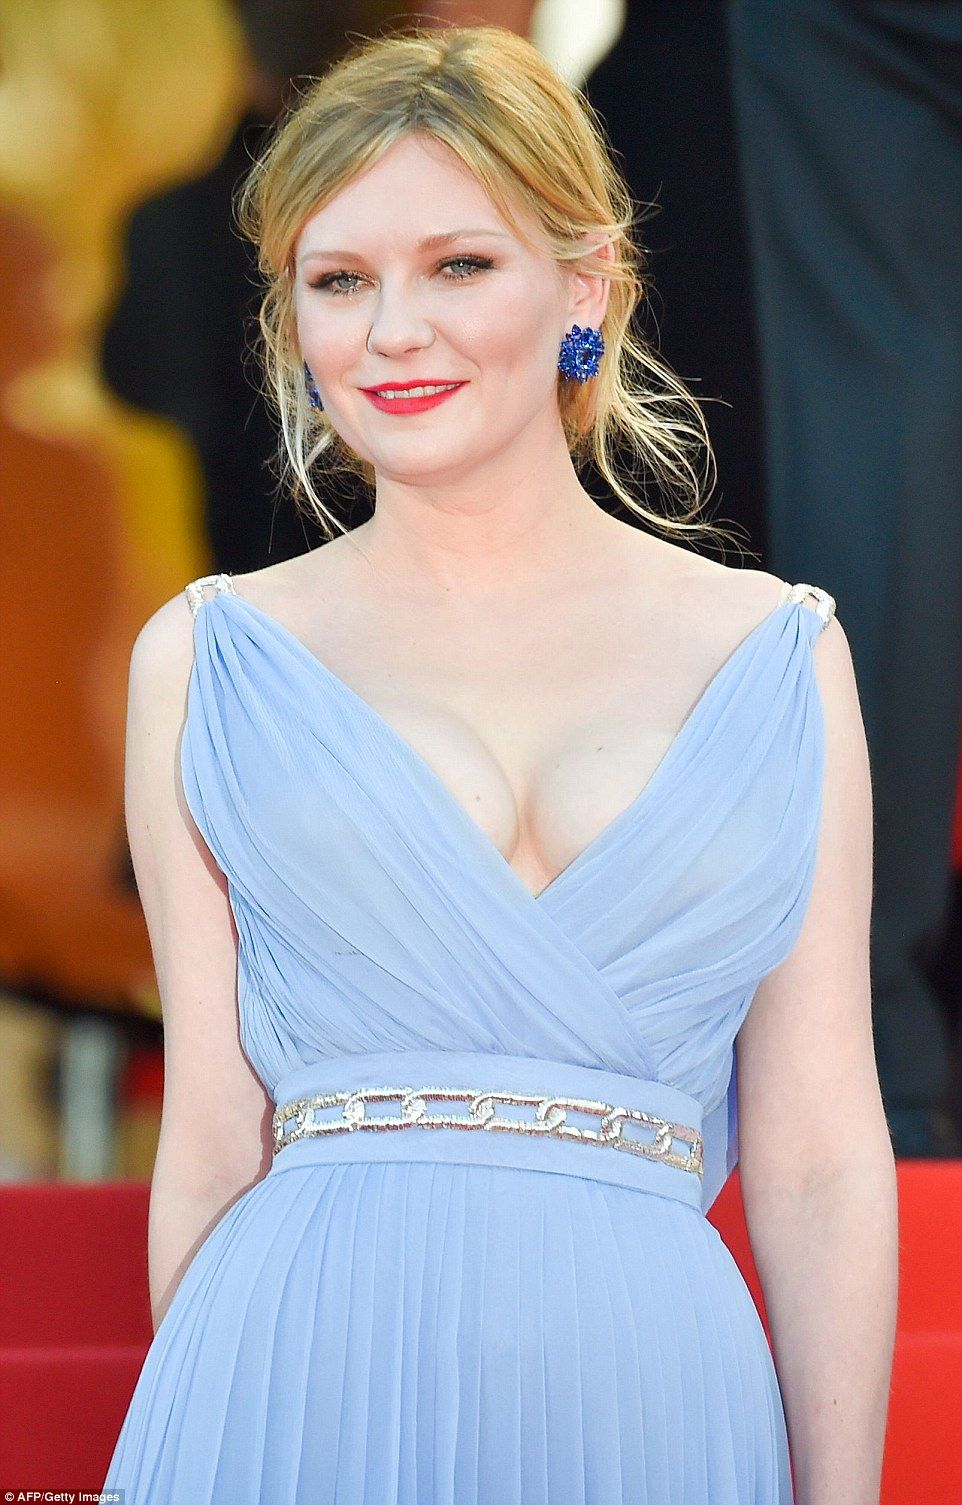 Kirsten dunst old lady tits - 2019 year